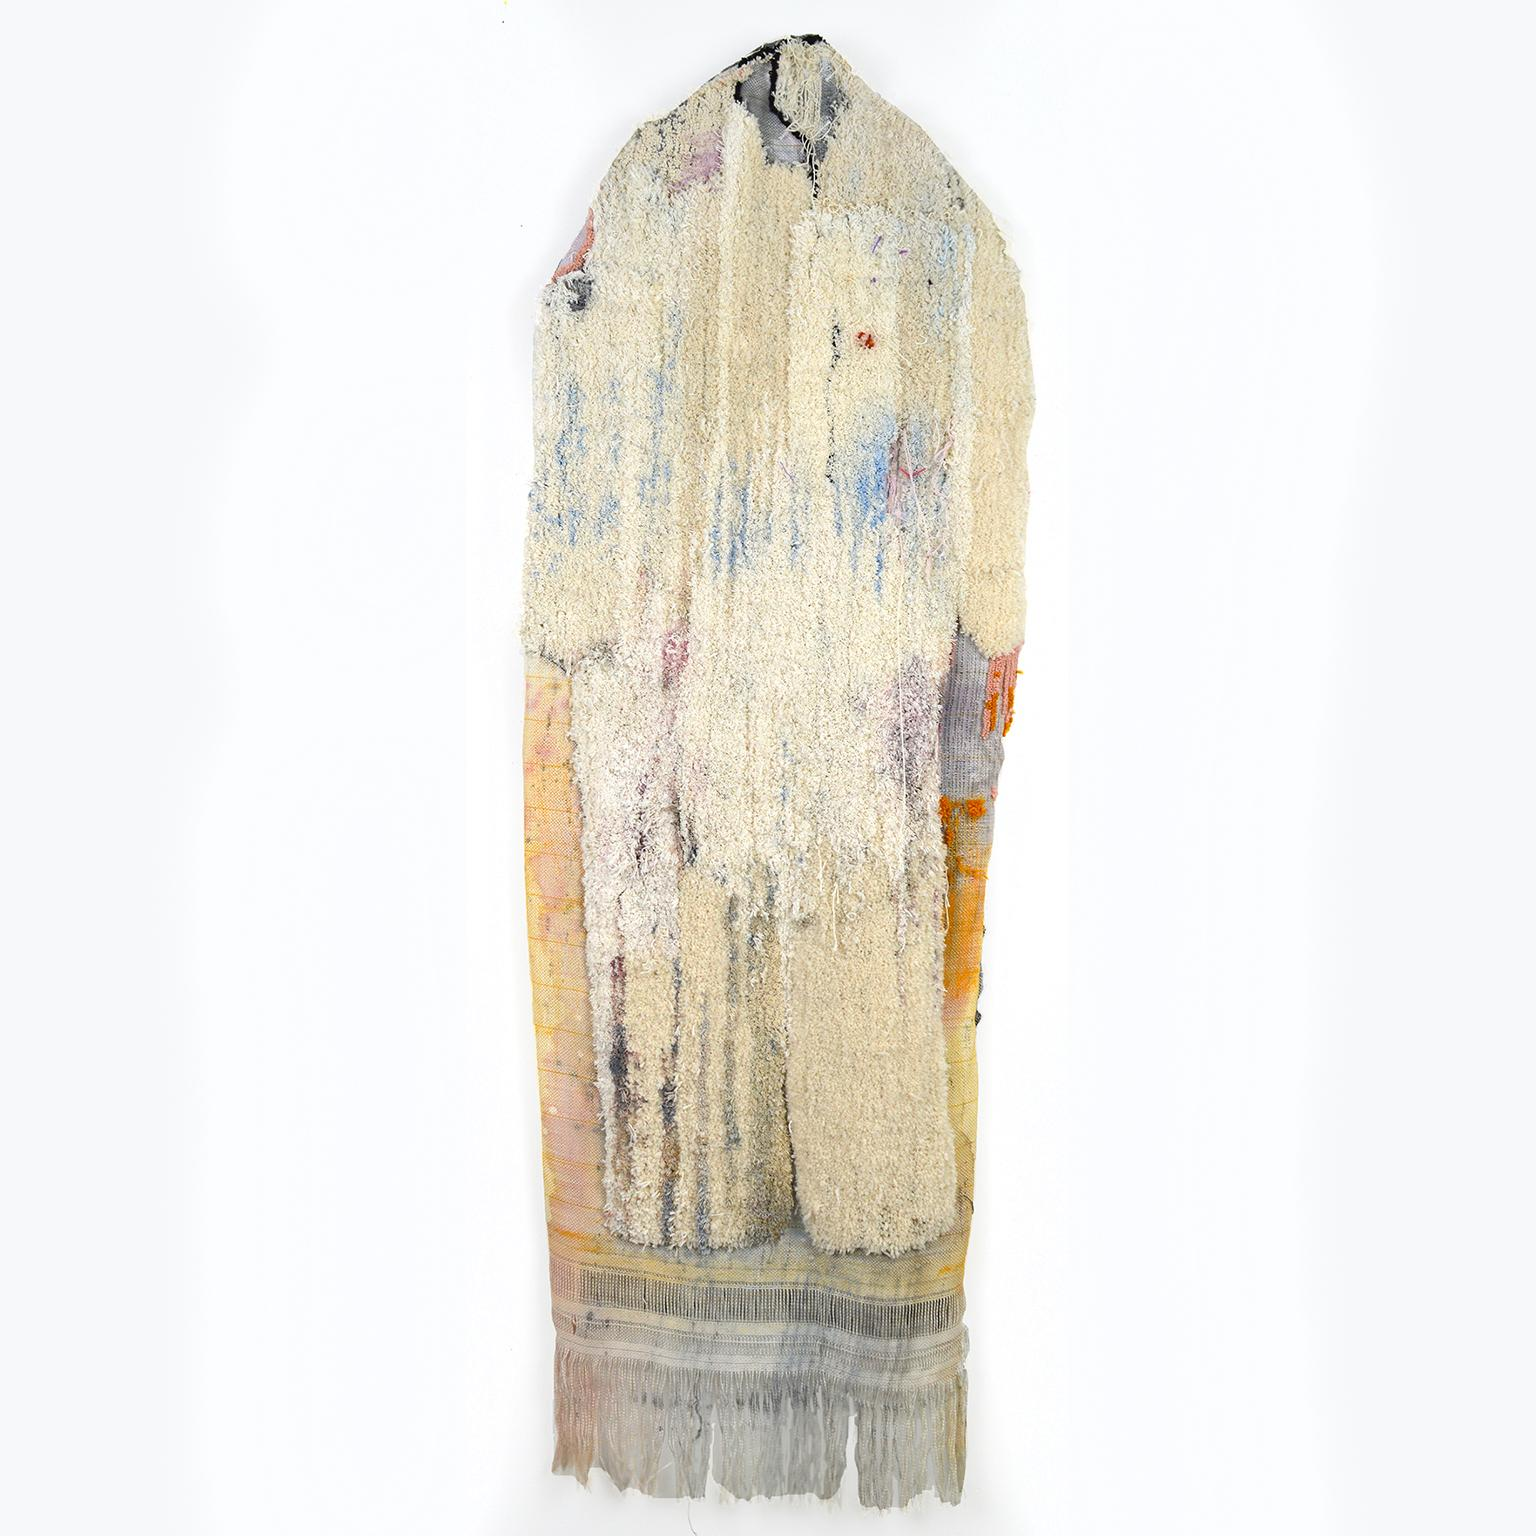 Large Textile Wall Hanging Sculpture: 'Jumpsuit'